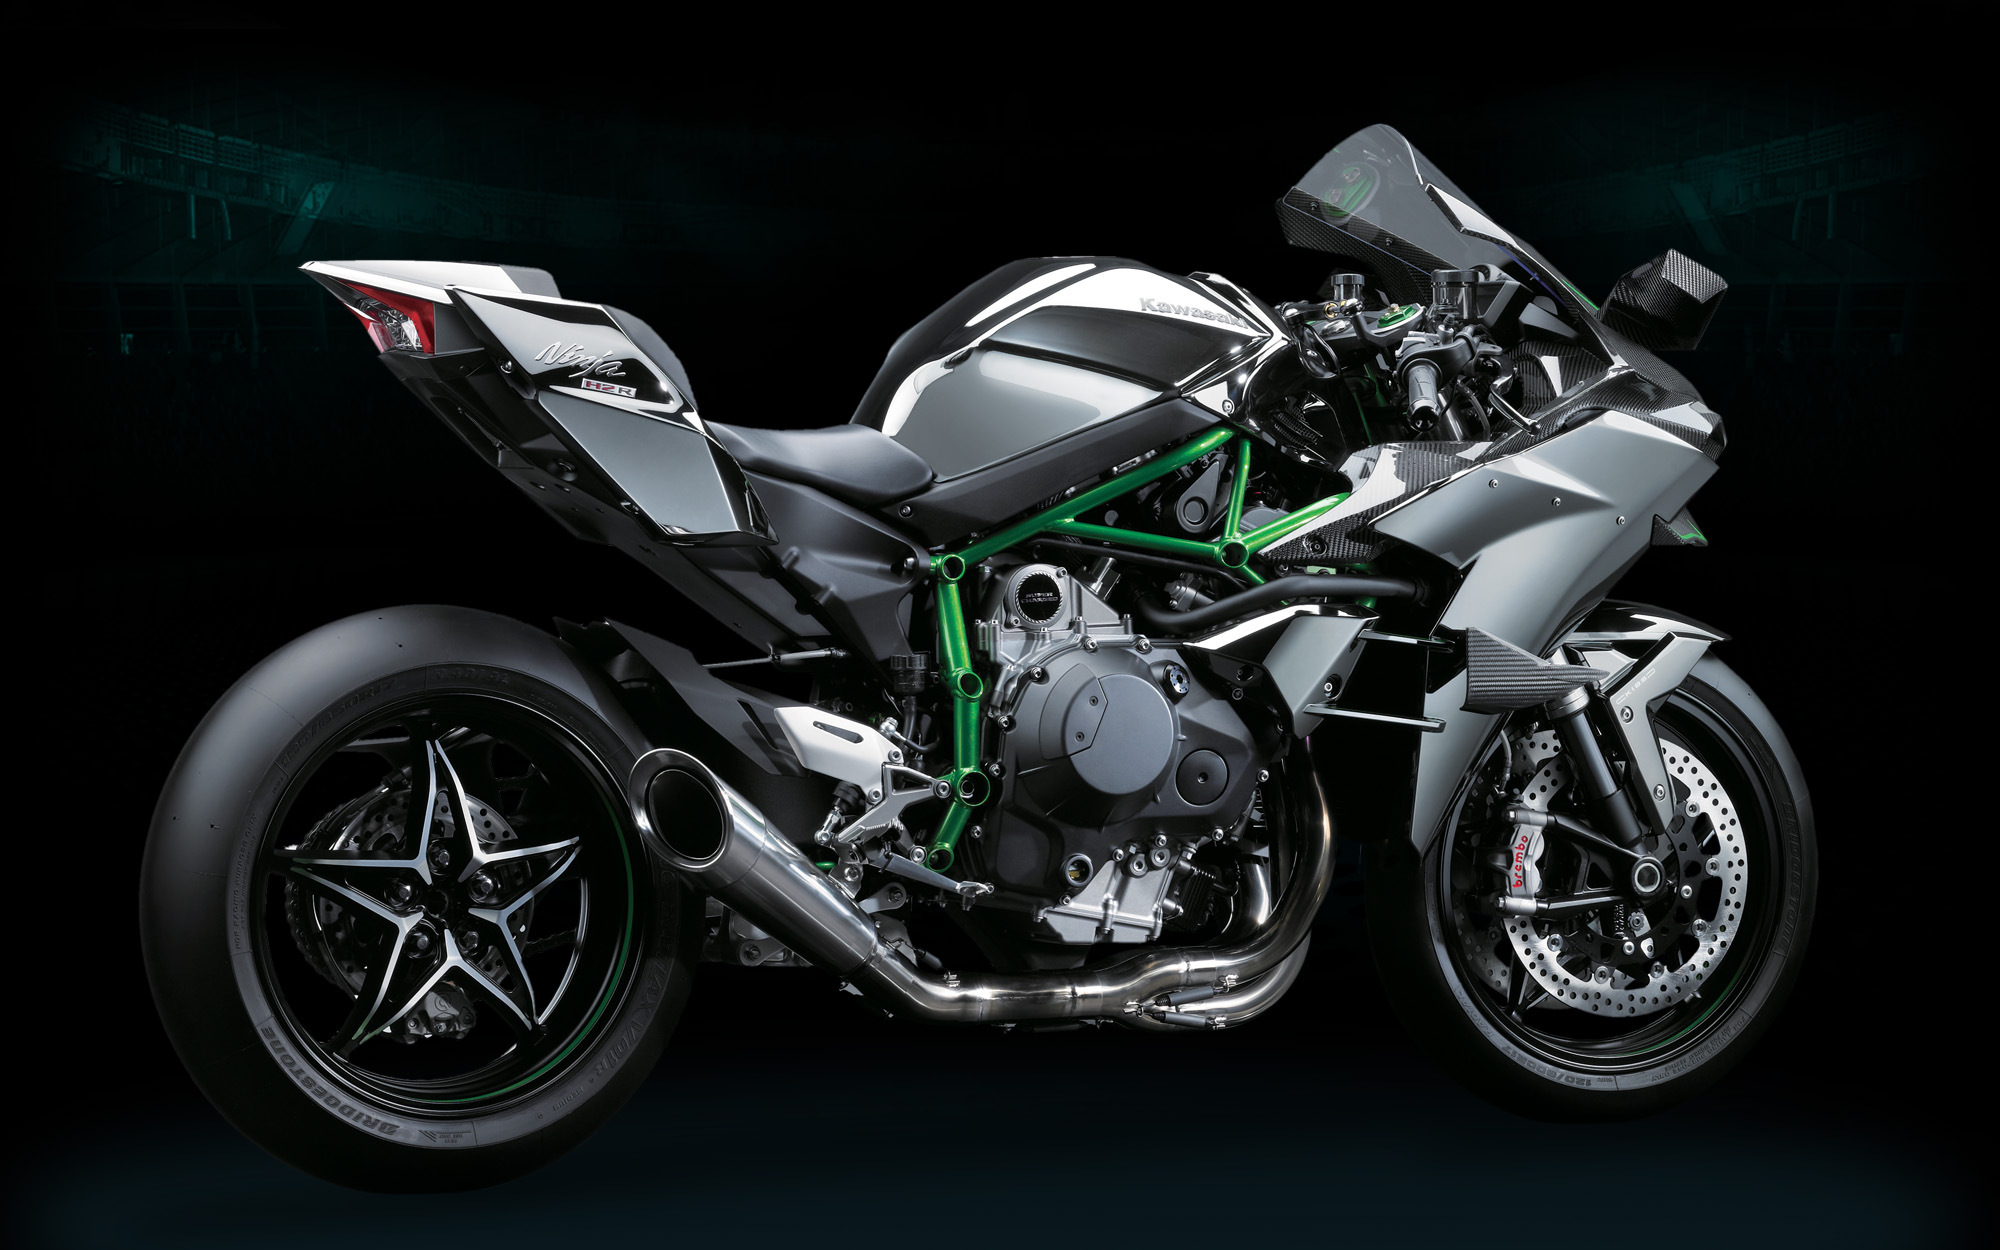 Expect To See The Kawasaki Ninja H2 Street Bike Debut At EICMA Let 2000x1250